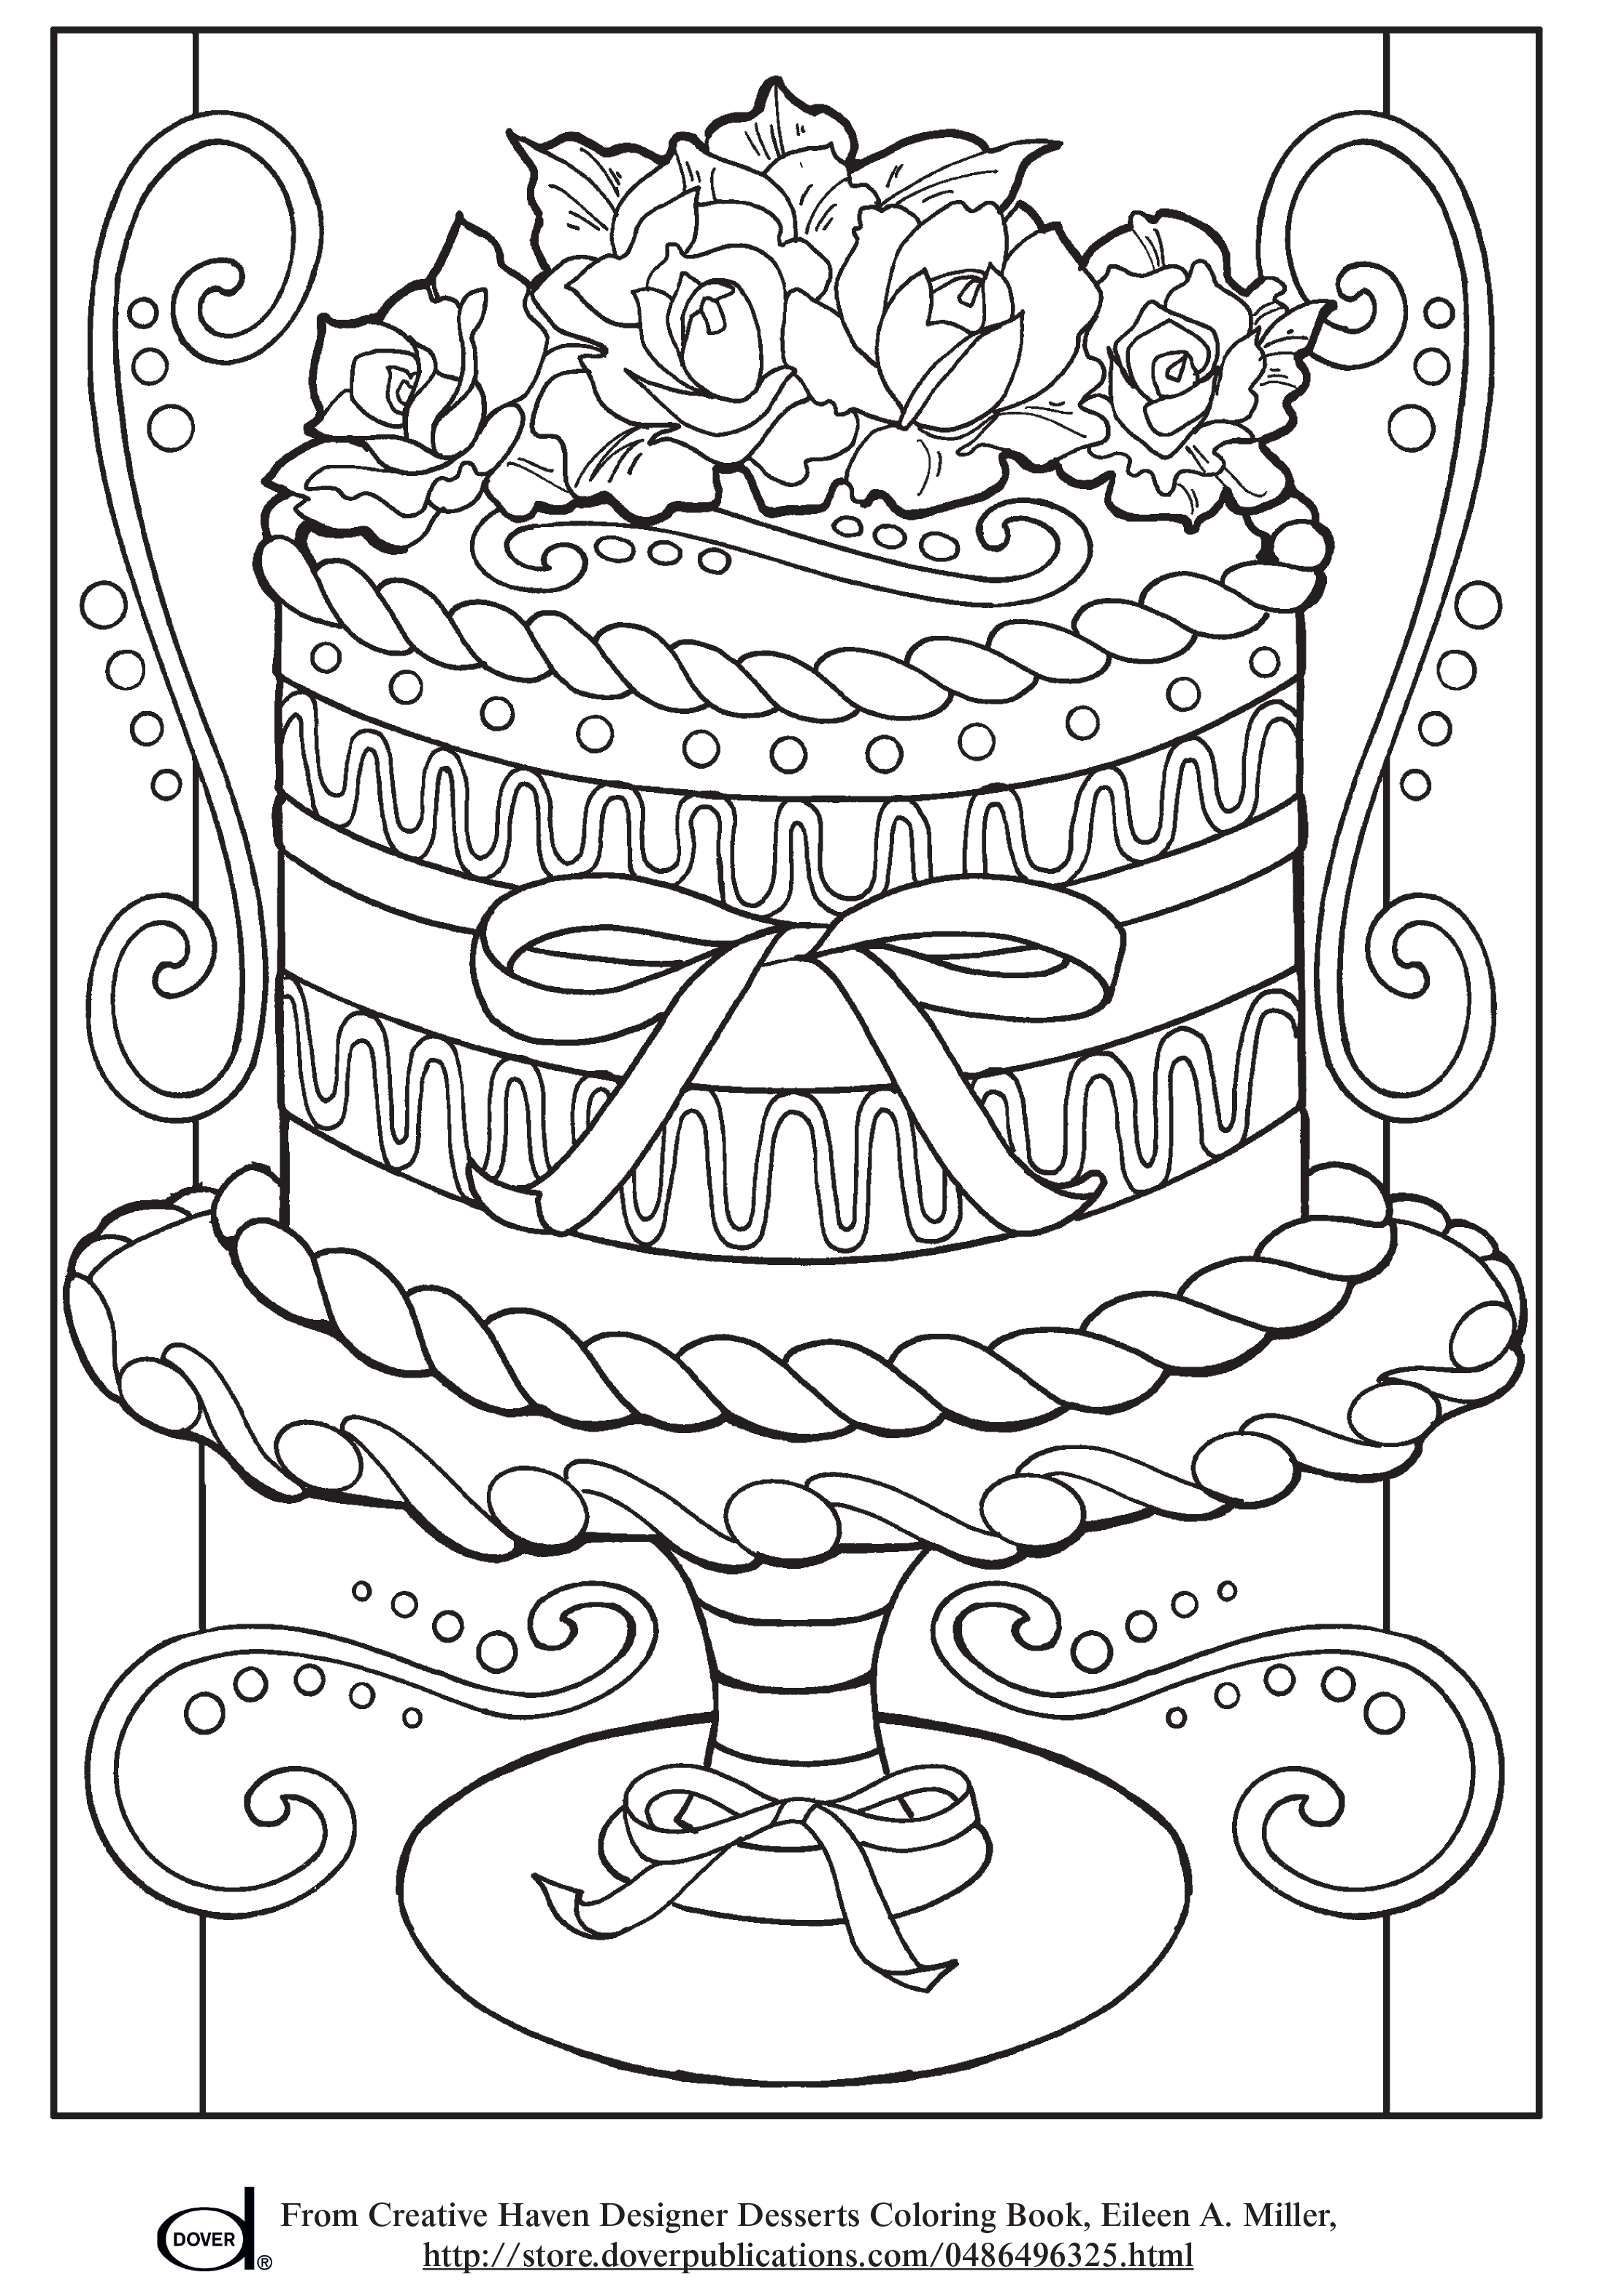 Free Printable Adult Coloring Pages - Wedding Cake | coloring ...